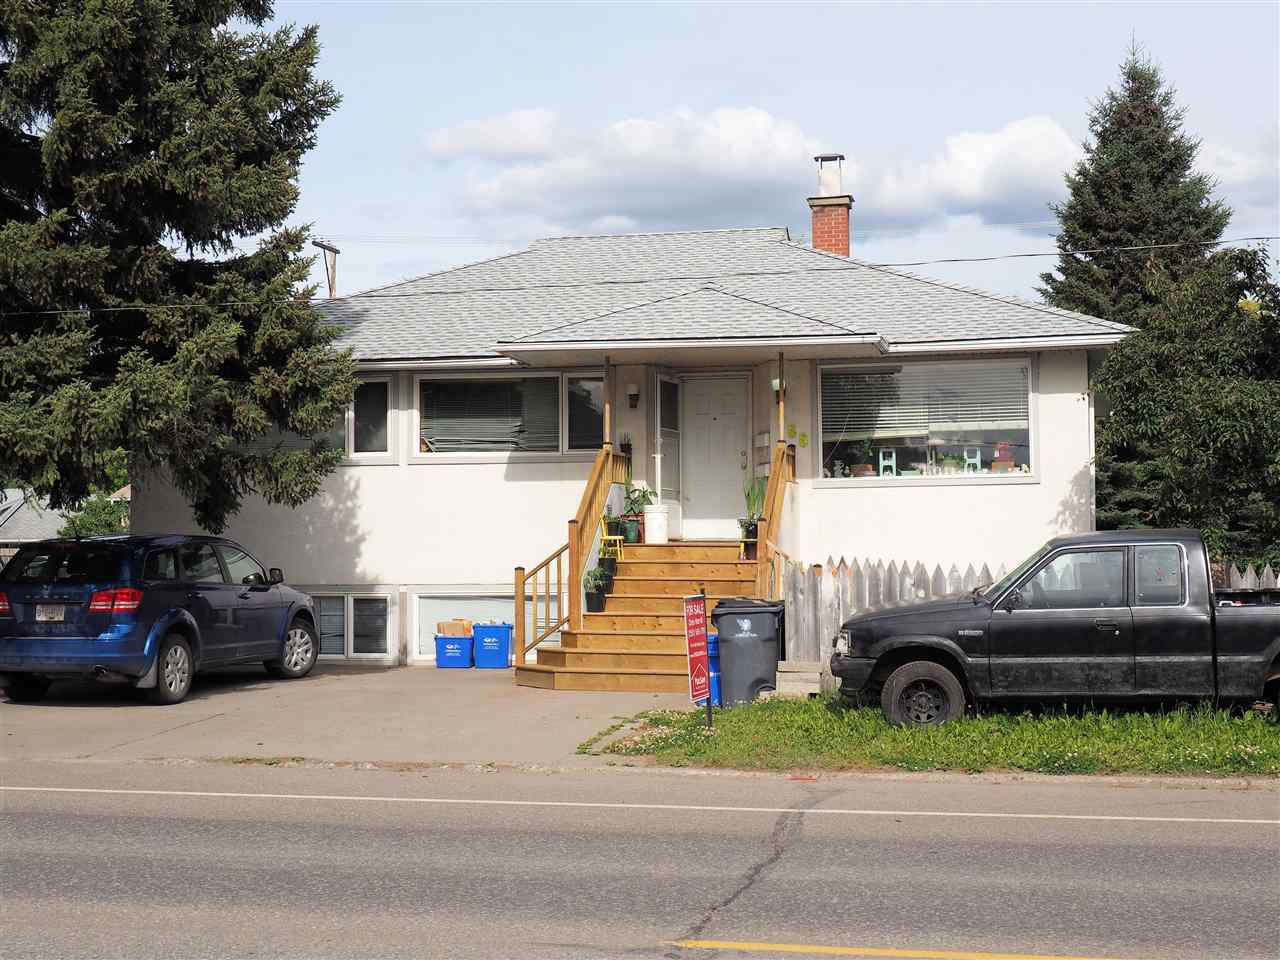 Main Photo: 666 CARNEY Street in Prince George: Central House for sale (PG City Central (Zone 72))  : MLS®# R2066405